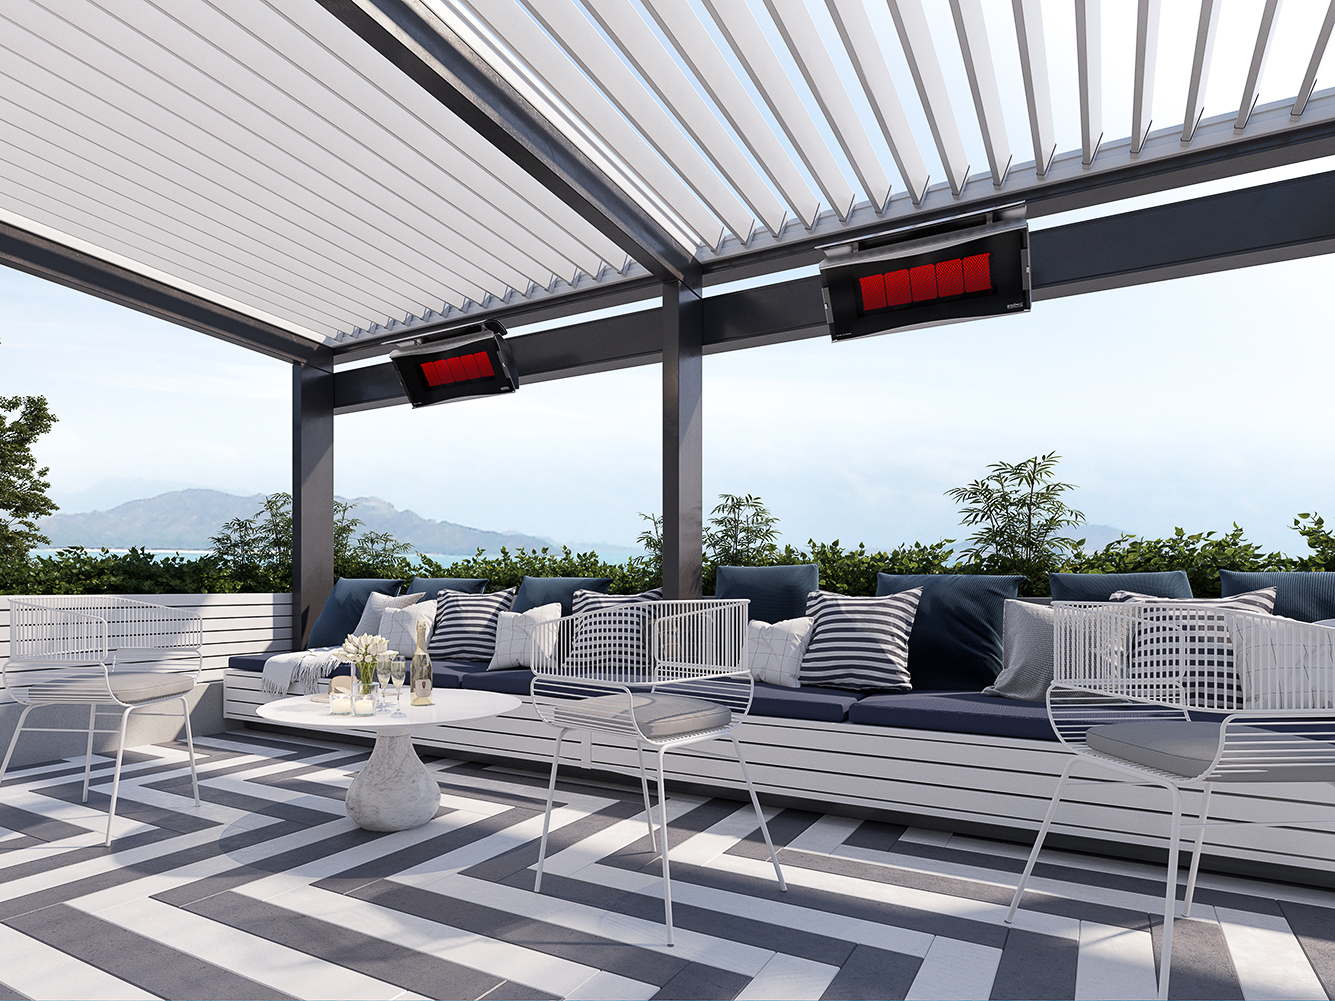 Patio Heater Frequently Asked Questions | WoodlandDirect.com ...